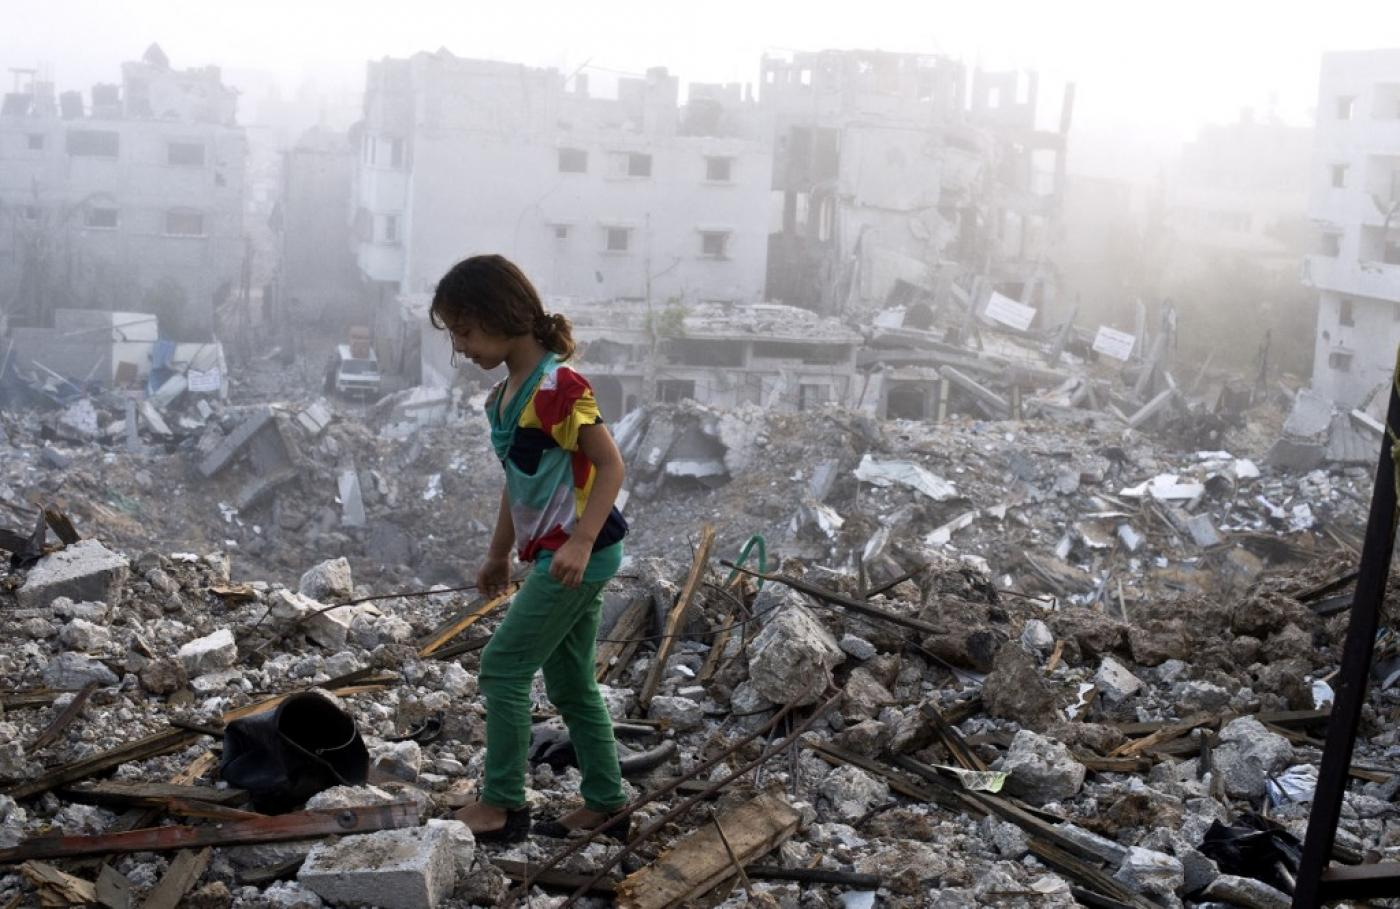 gaza rubble 2014 afp